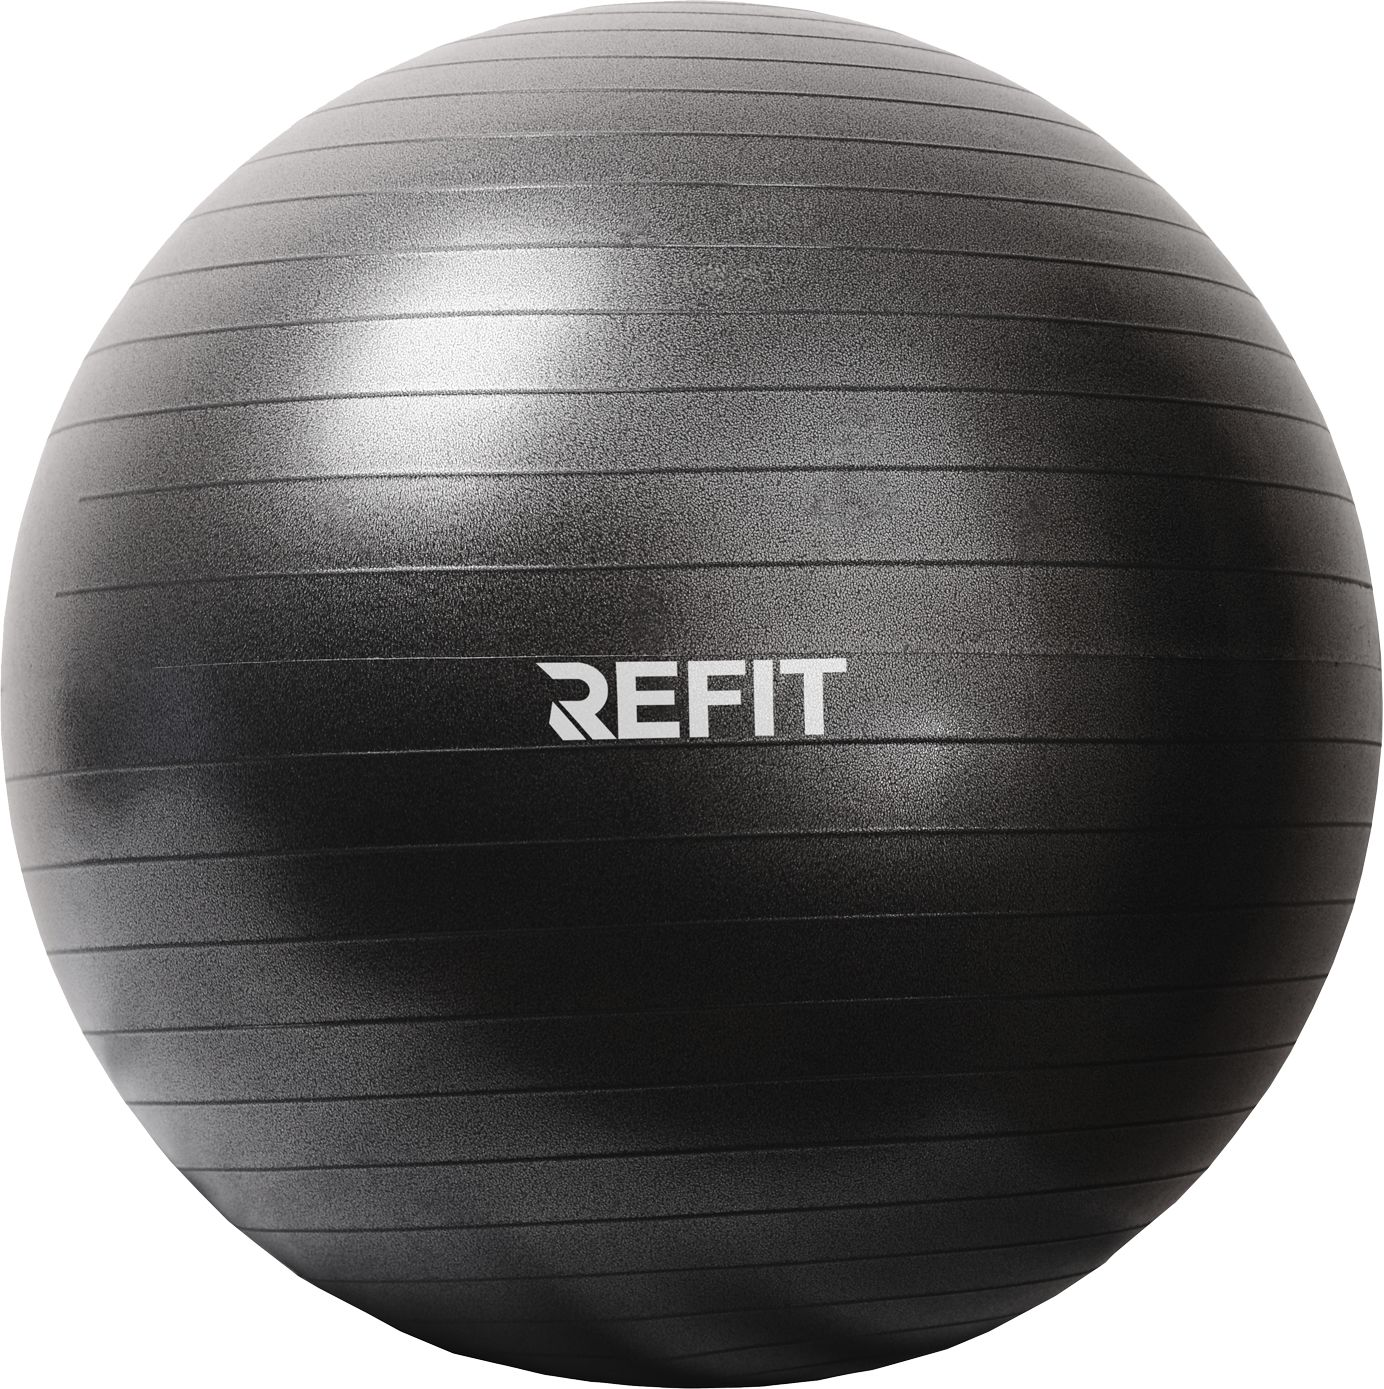 Gymnastikbälle Fitnessball Pilates Yoga Fitness Gym Ball Sport 65 cm YB02